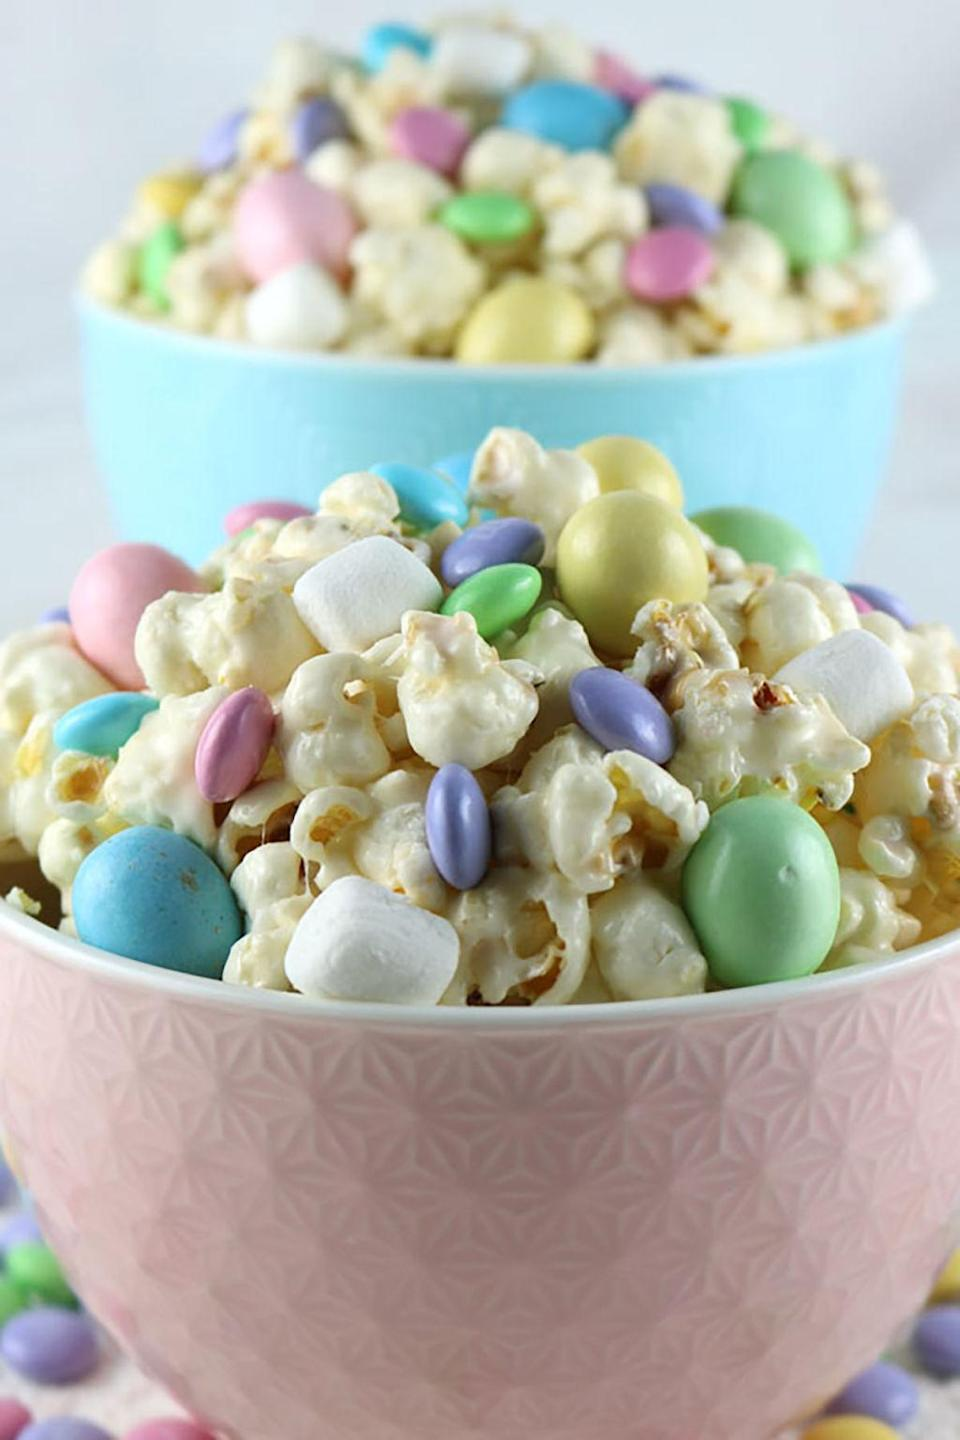 """<p><span>Melted marshmallow coats the popcorn in this crunchy Easter treat, which tastes as sweet as it looks!</span></p><p><strong>Courtesy of <a href=""""http://www.twosisterscrafting.com/easter-candy-popcorn/"""" rel=""""nofollow noopener"""" target=""""_blank"""" data-ylk=""""slk:Two Sisters Crafting"""" class=""""link rapid-noclick-resp"""">Two Sisters Crafting</a>. </strong></p>"""